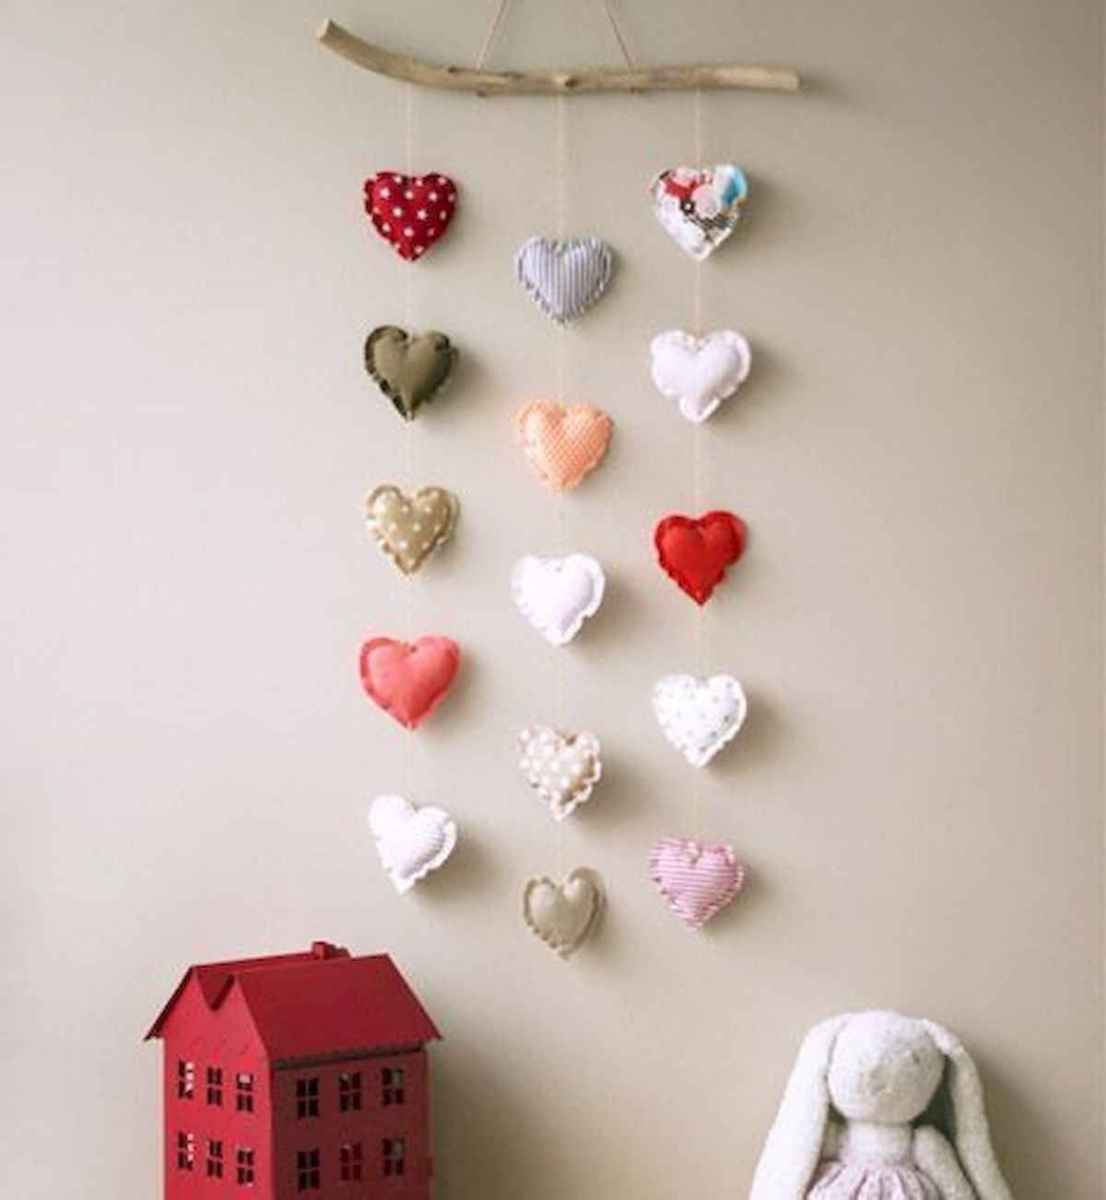 110 easy diy valentines decorations ideas and remodel (84)